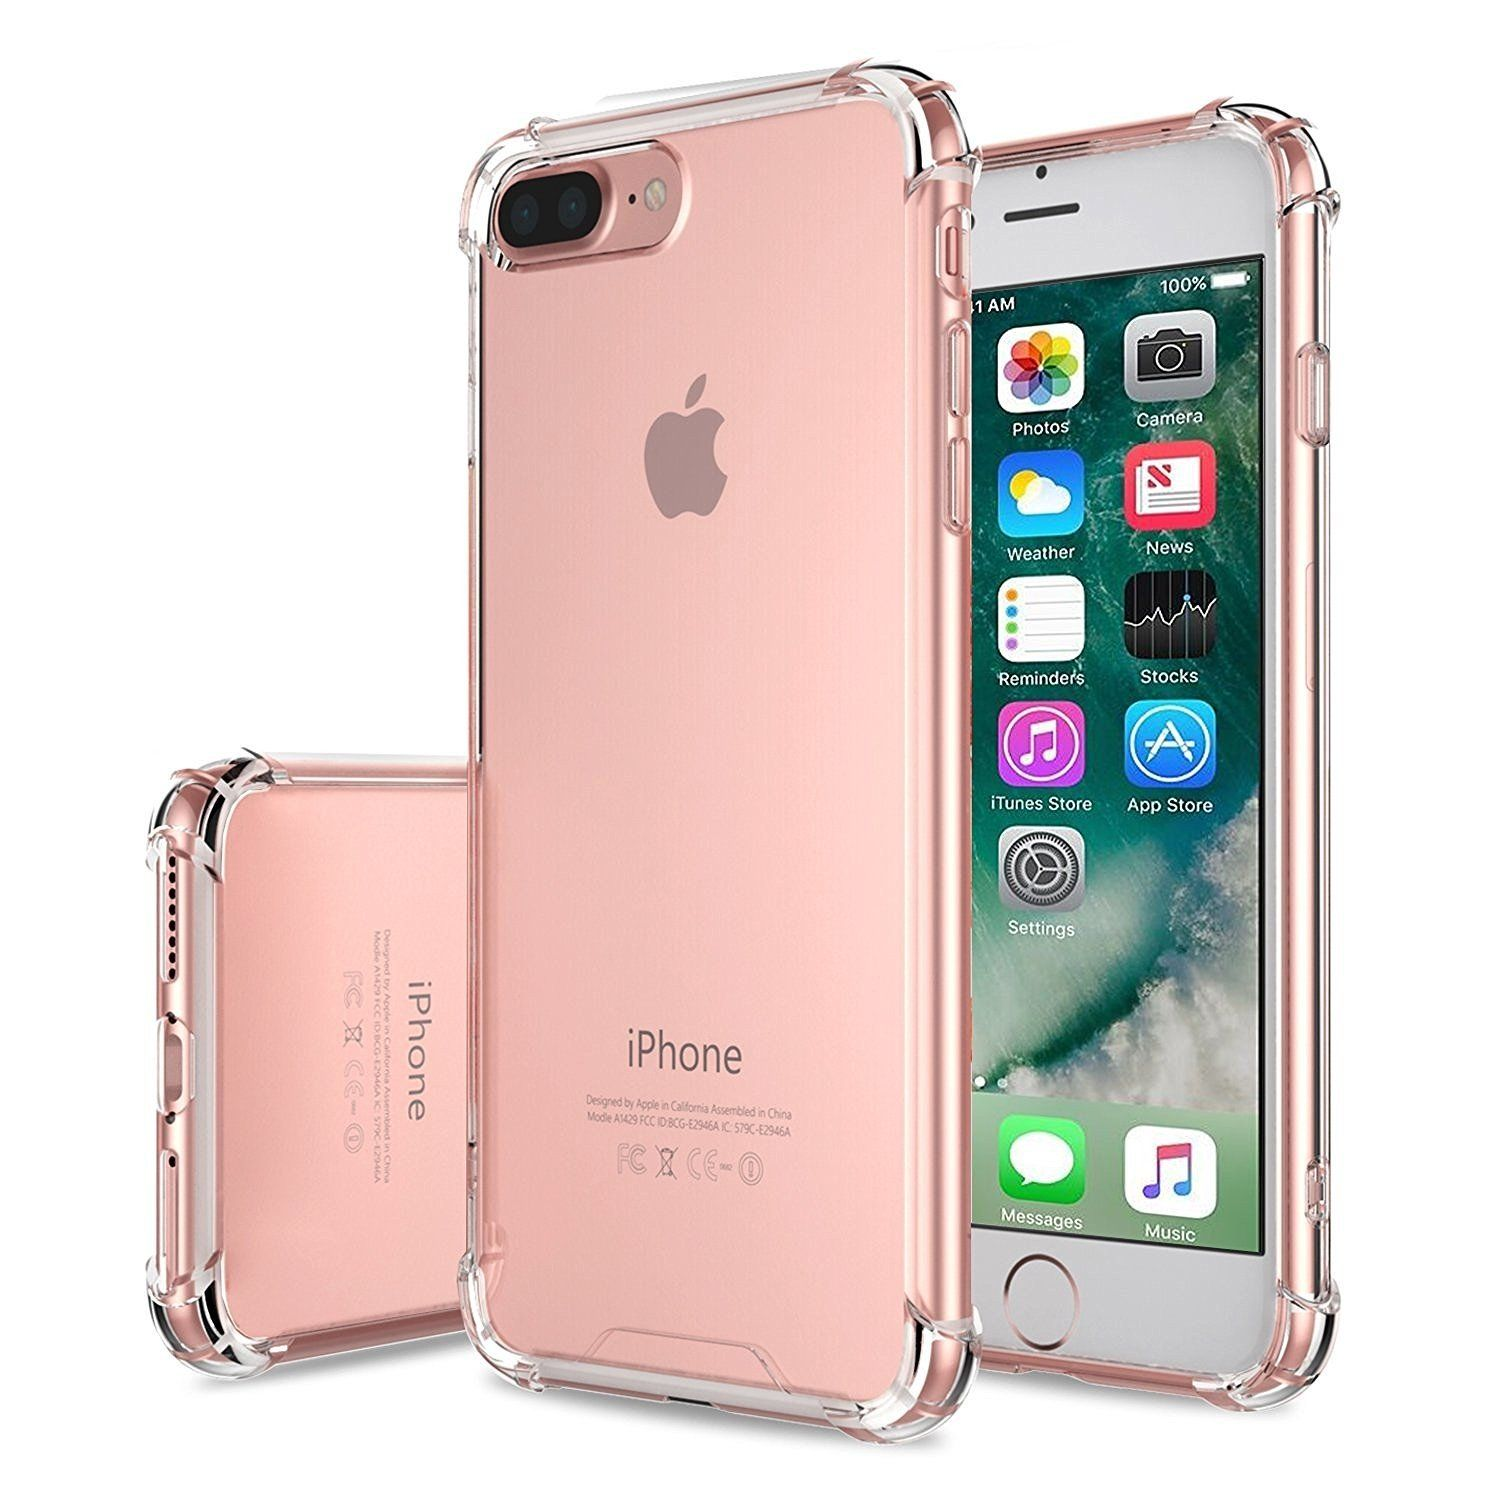 Capinhas Para Iphone 7 Plus Com Bordas Translucida Tpu Silicone Gel Case Xs X Spigen Anti Shock With Stand Slim Armor Casing Violet 6 Casesiphone Glitter Caseluolnh Flowing Liquid Floating Bling Transparent Sparkle Quicksand Hard Cover For 47 Inchrose Gold